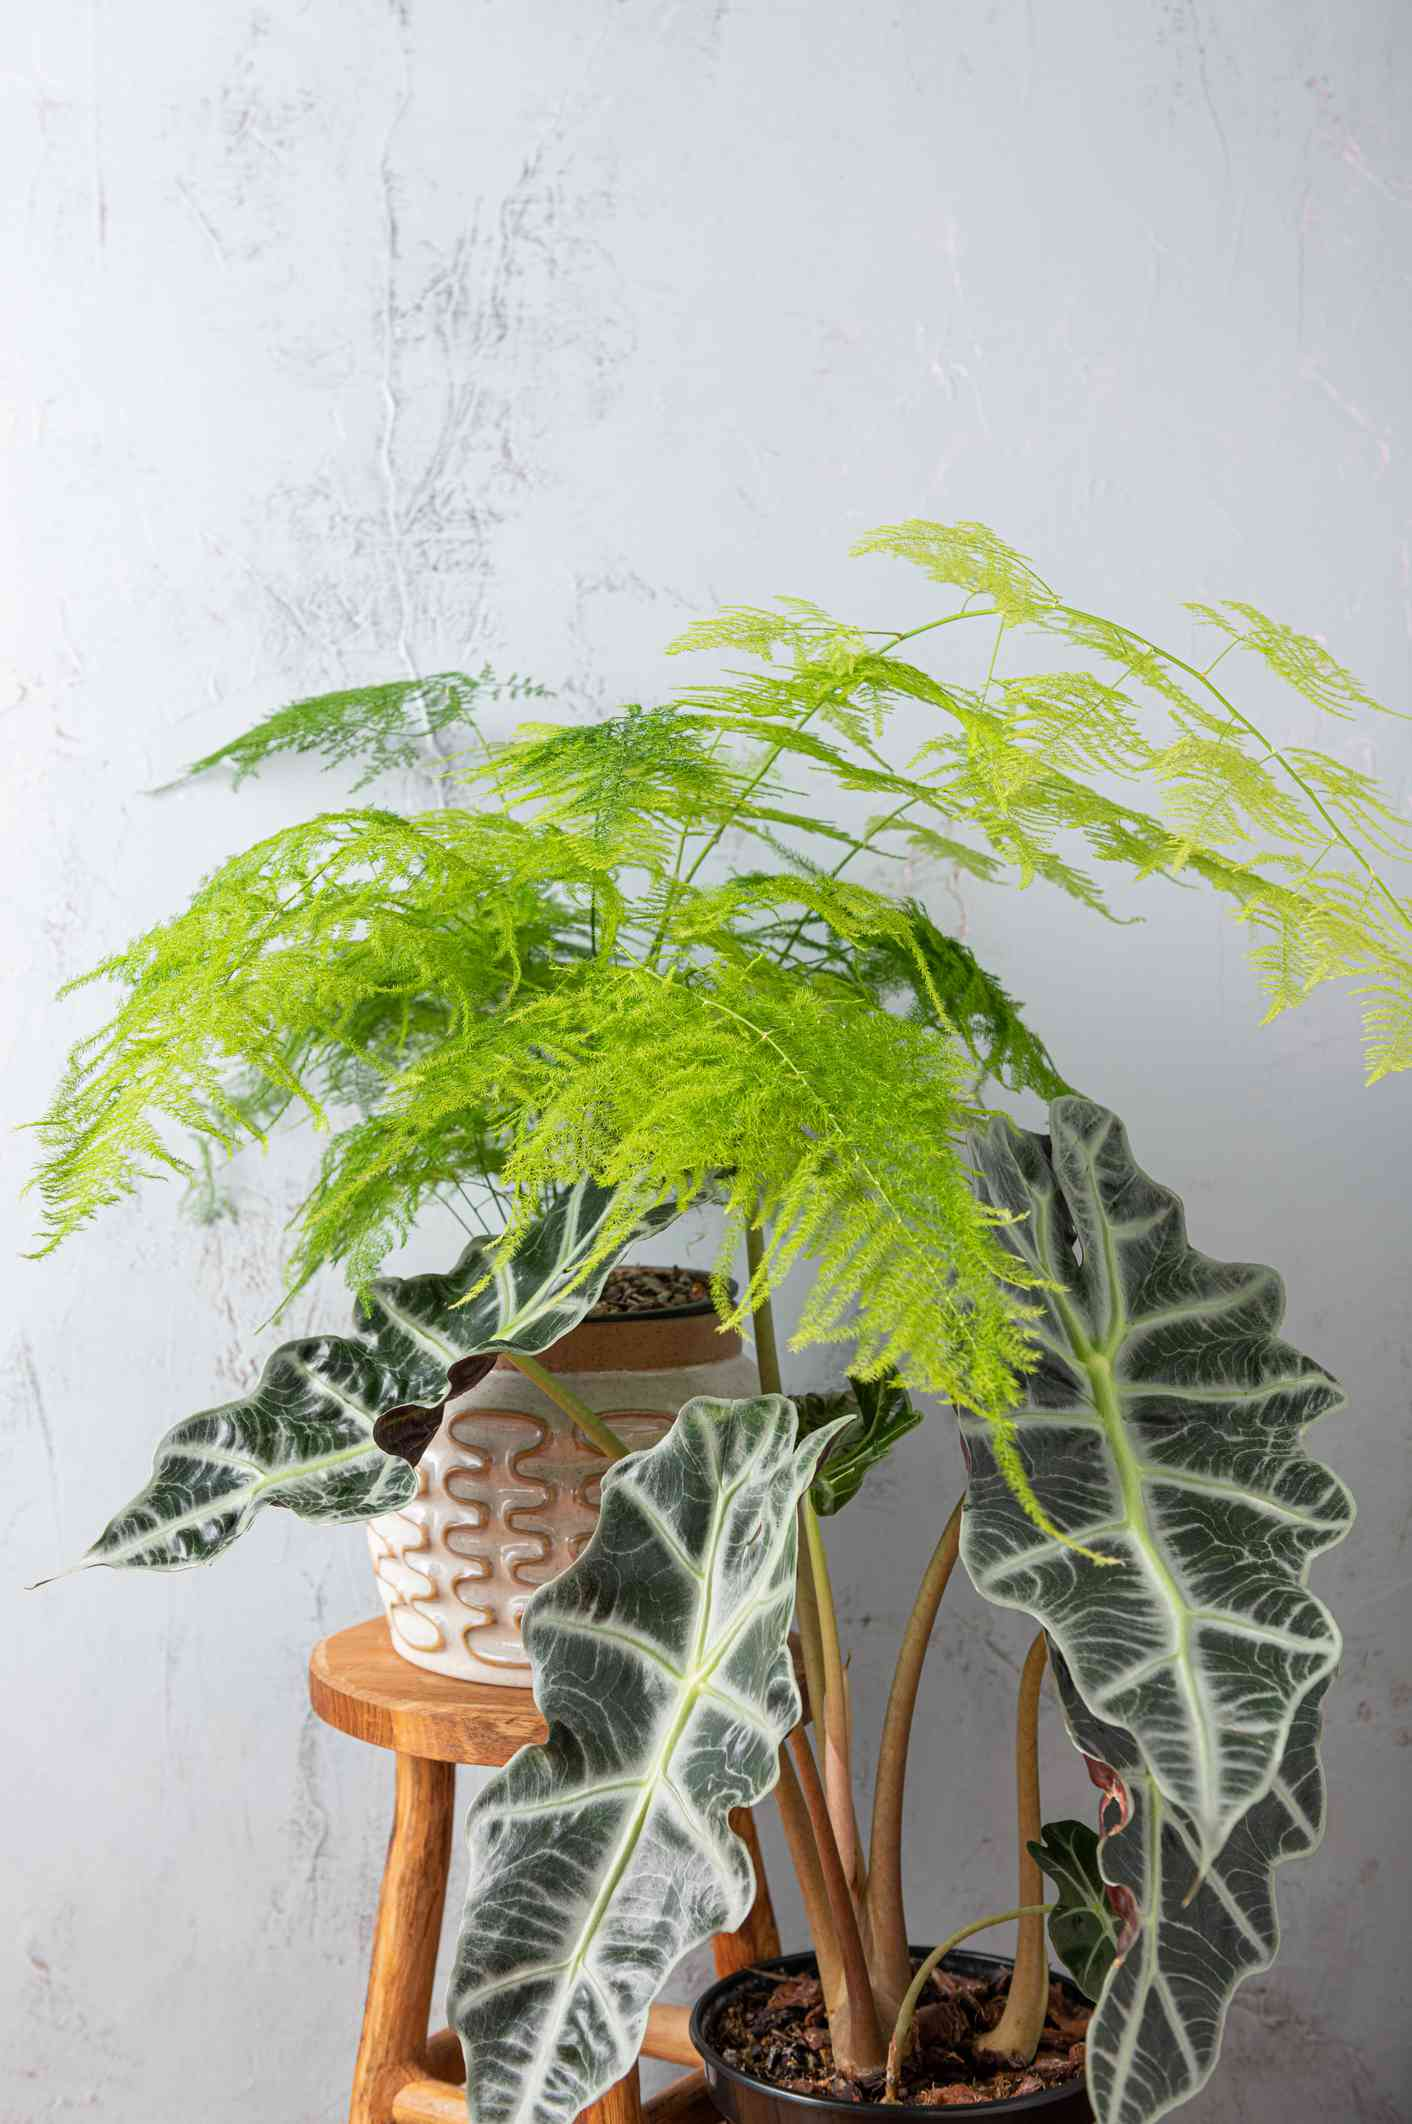 light green asparagus fern and green and white alocasia in pots on wooden stools in front of gray background